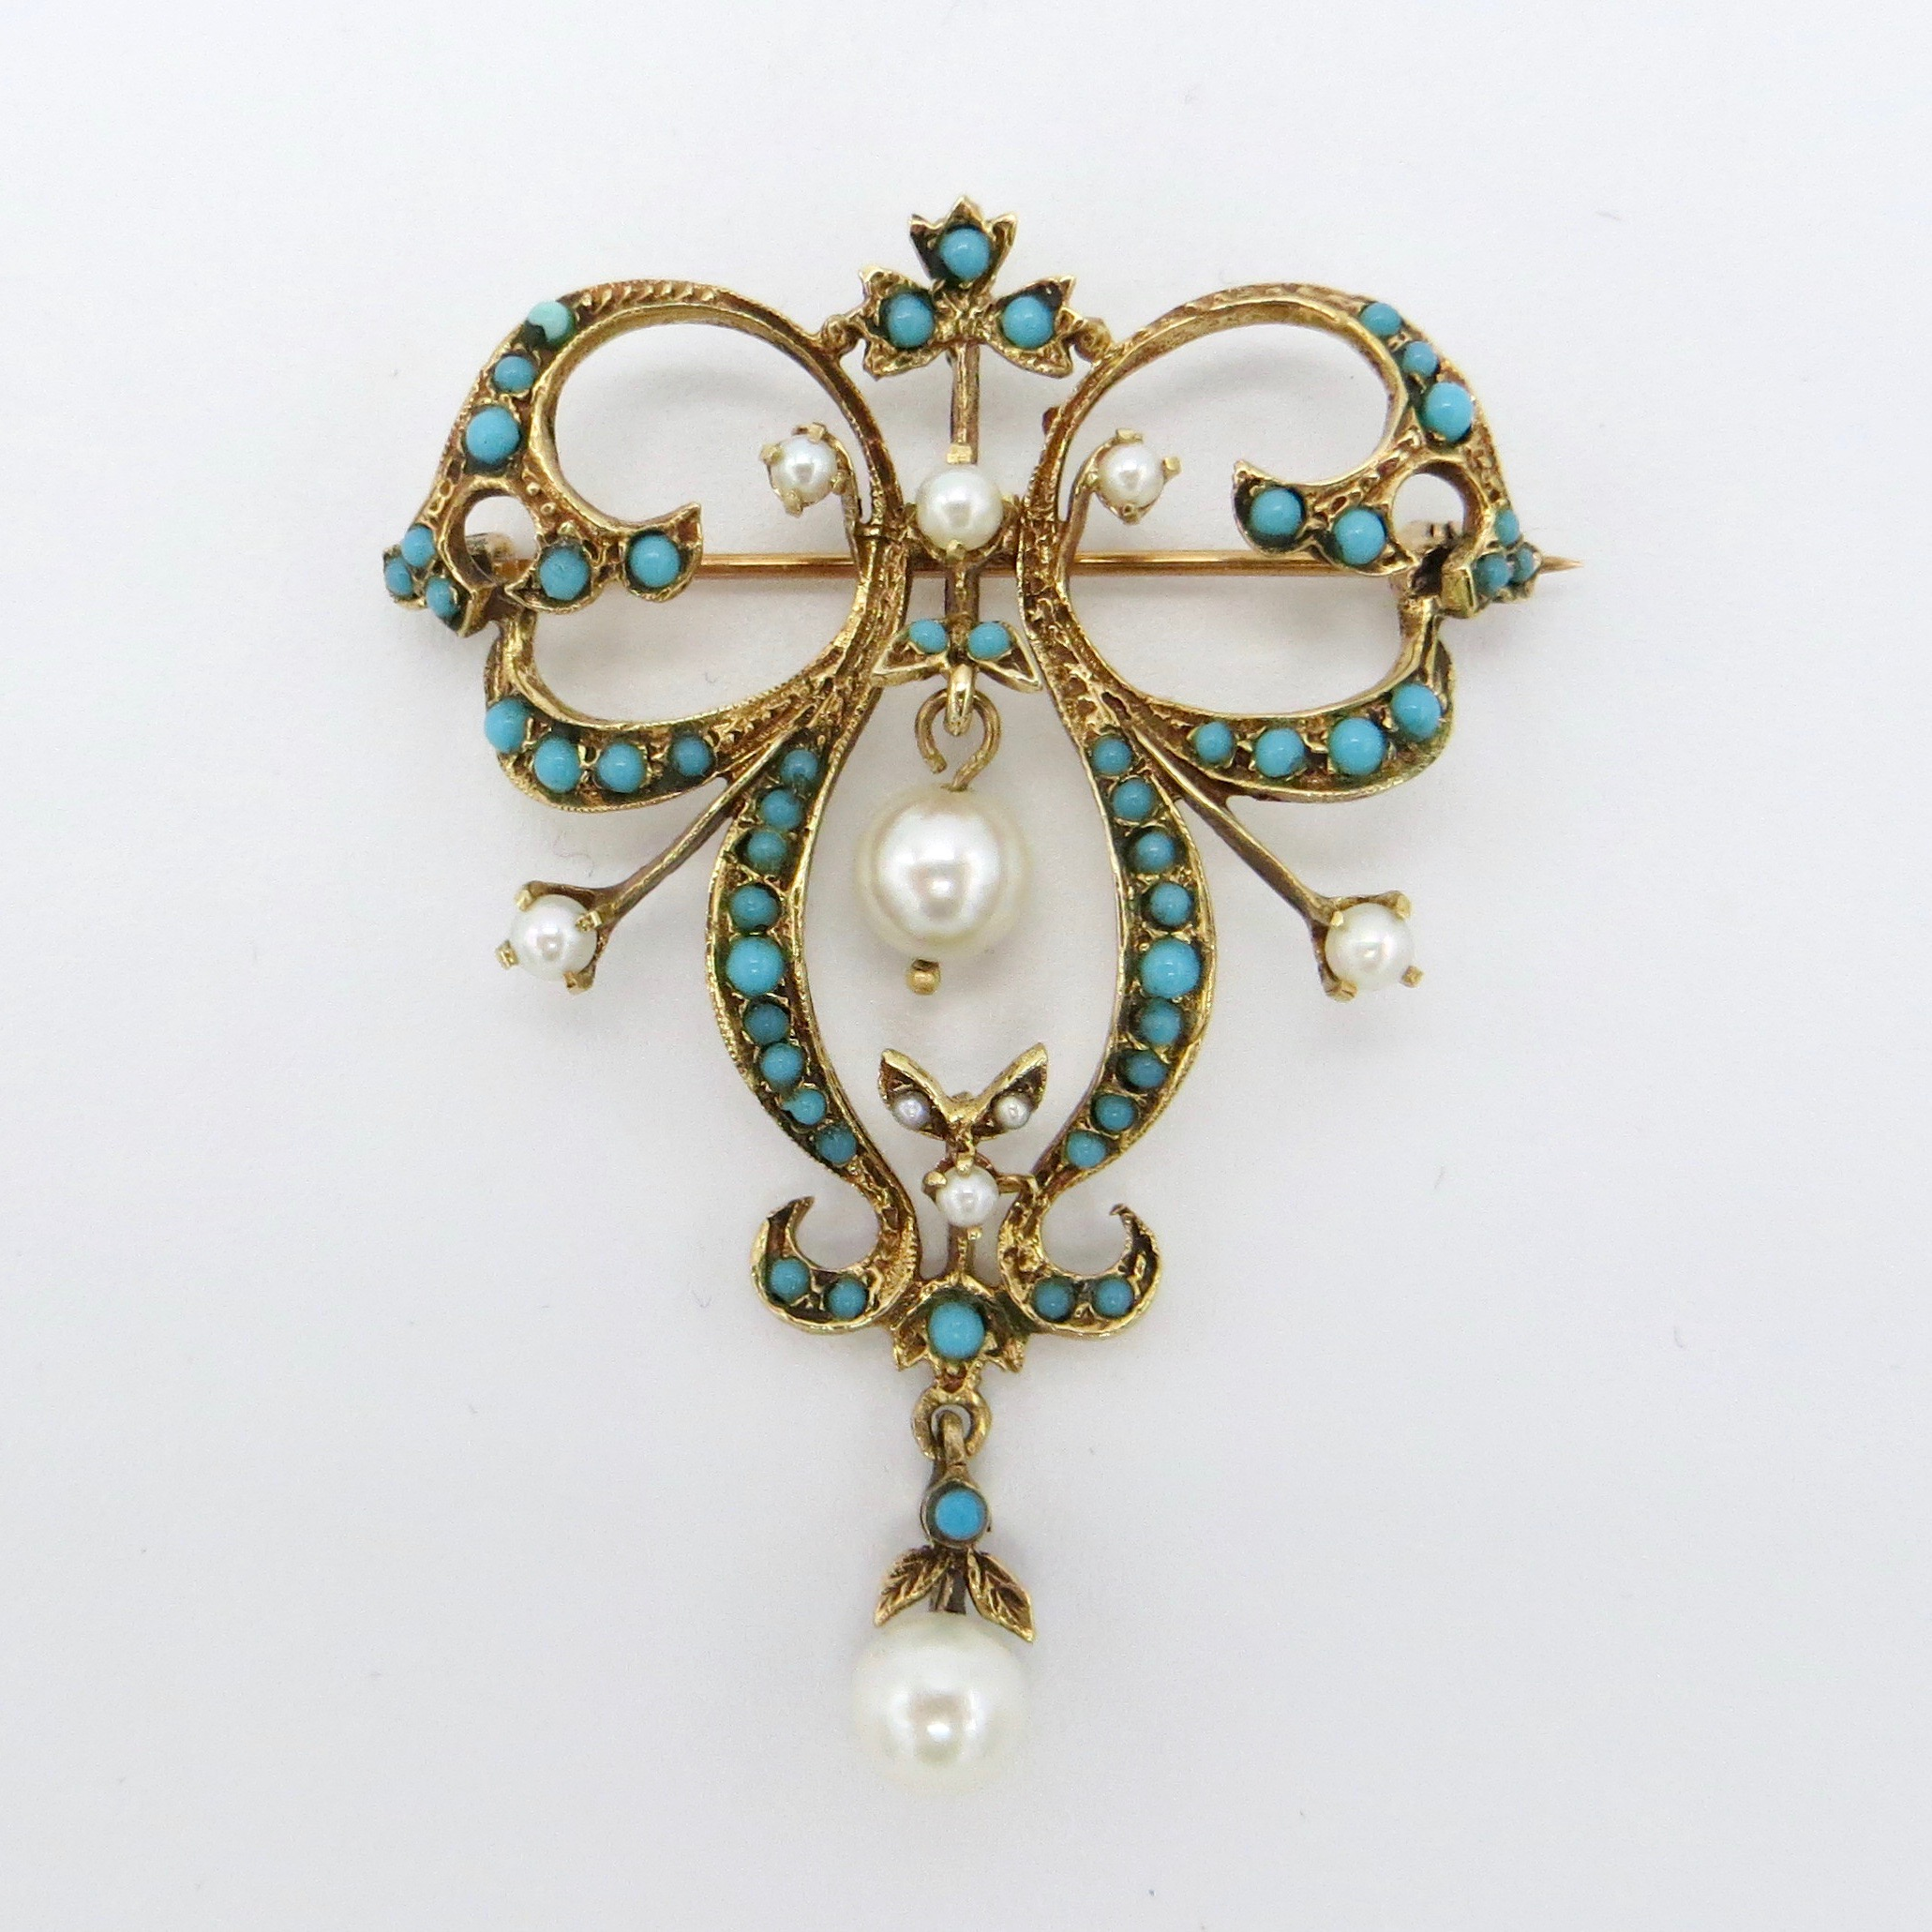 Turquoise & Pearl Brooch/Pendant